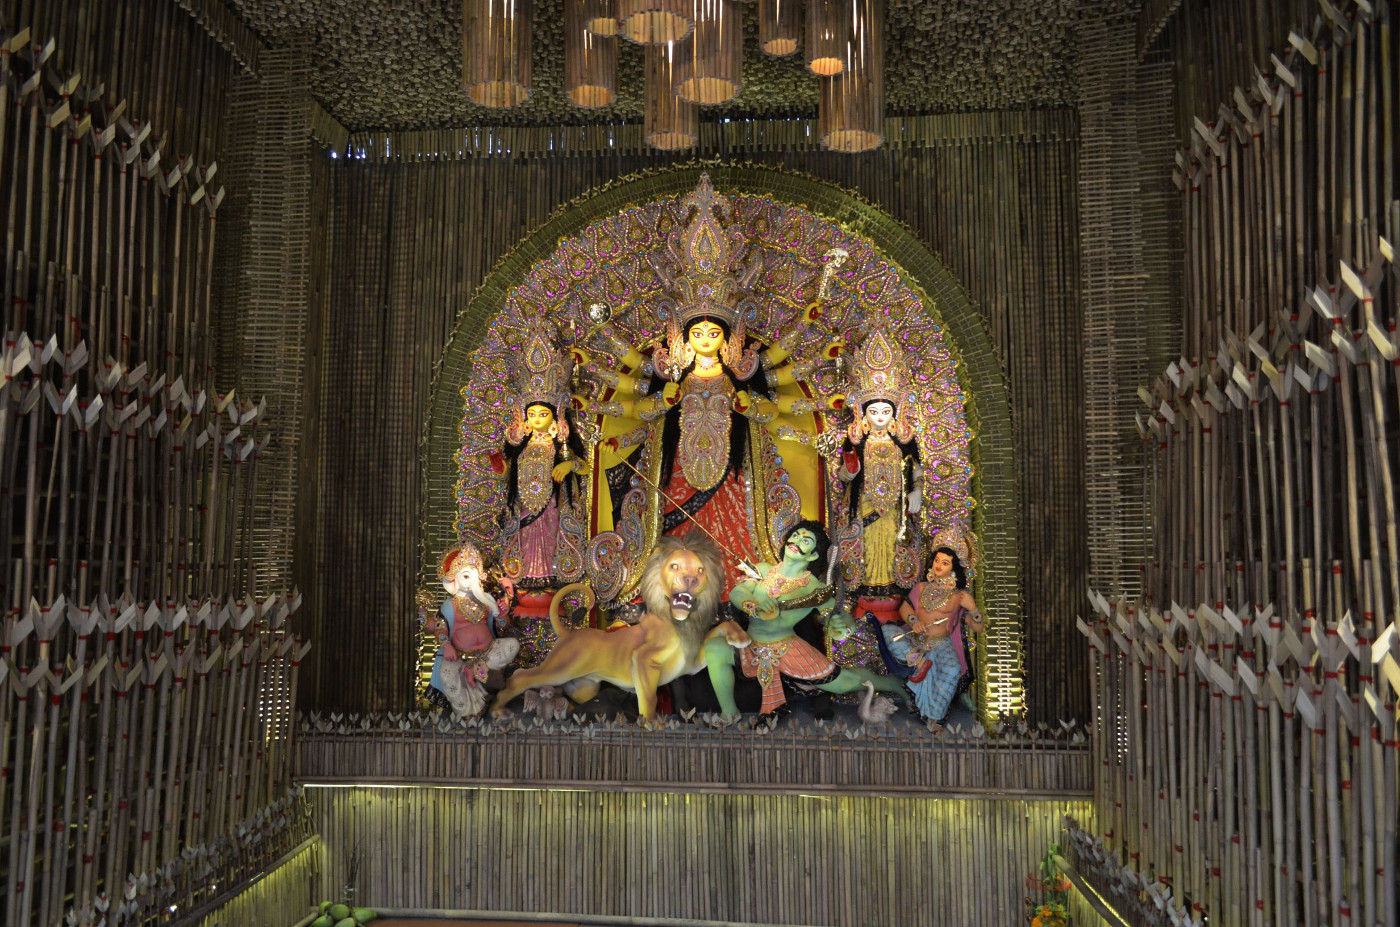 Highlighted idol, Kolkata Durga Puja 2015